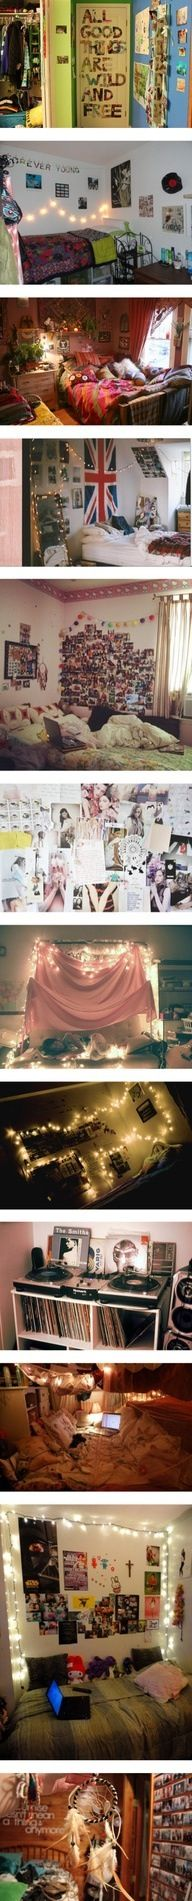 Hipster rooms!(;